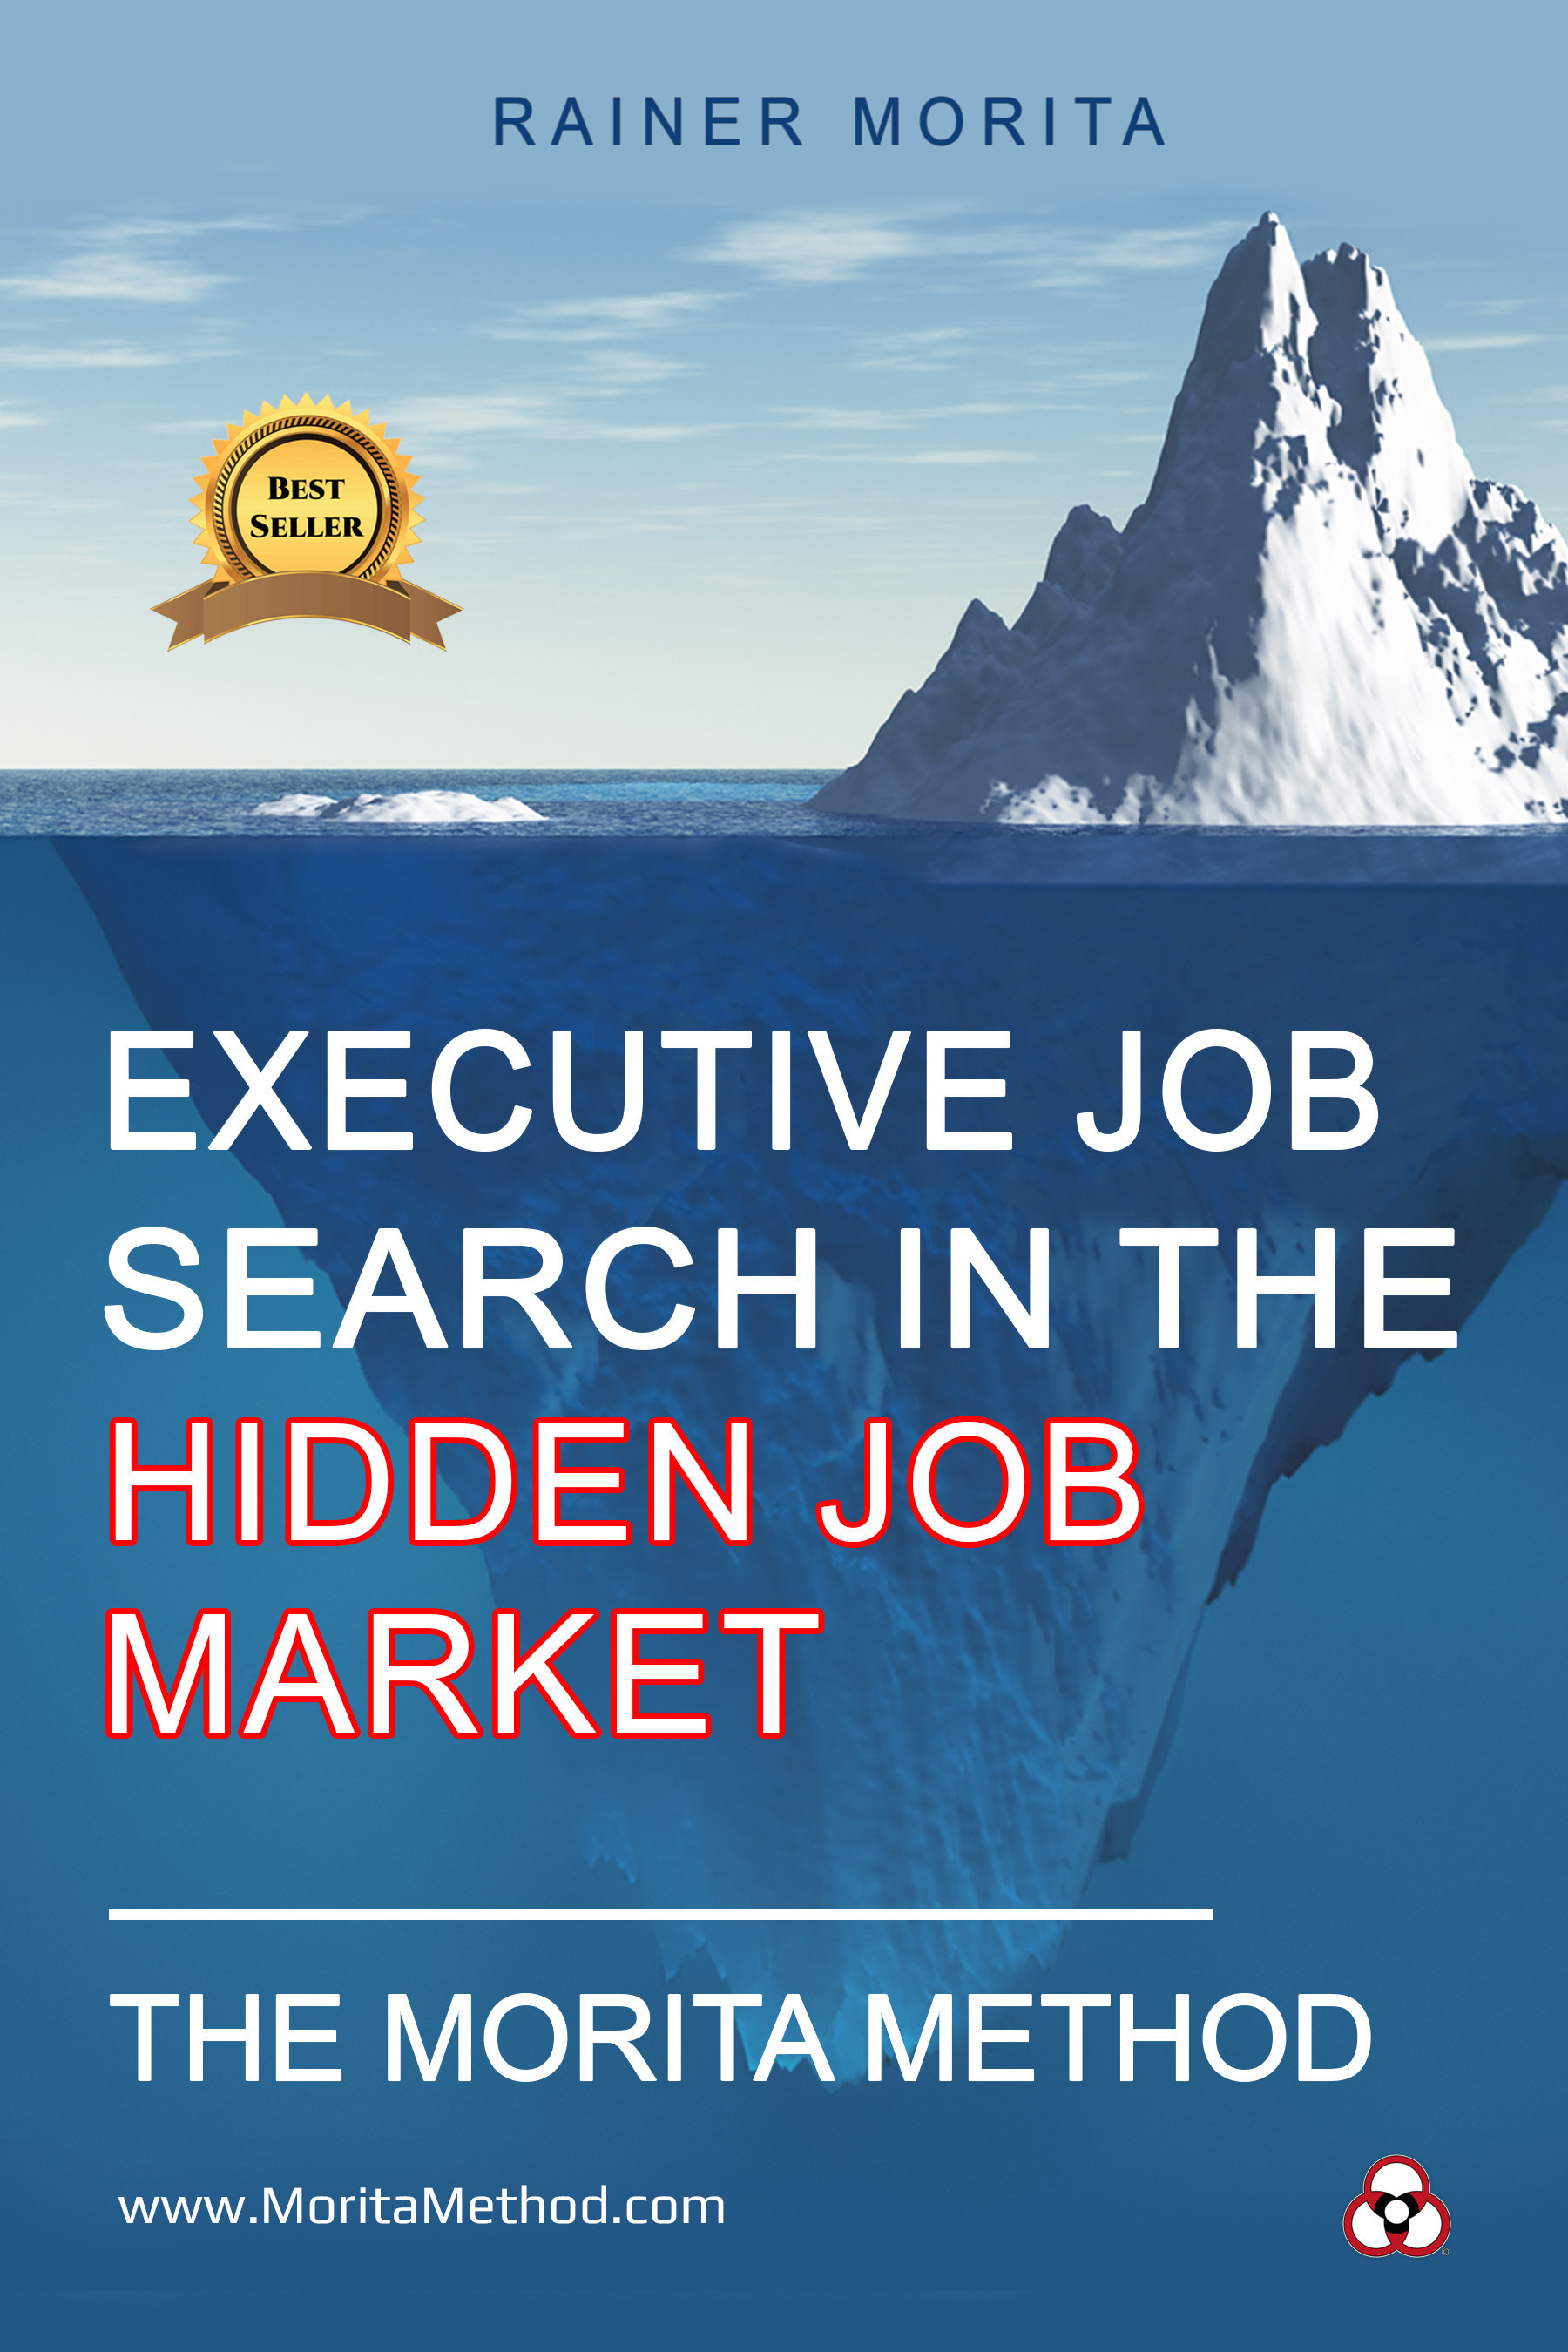 Hidden Job Market Expert Rainer Morita's Book 'The Morita Method' is a Best Seller in Five Countries